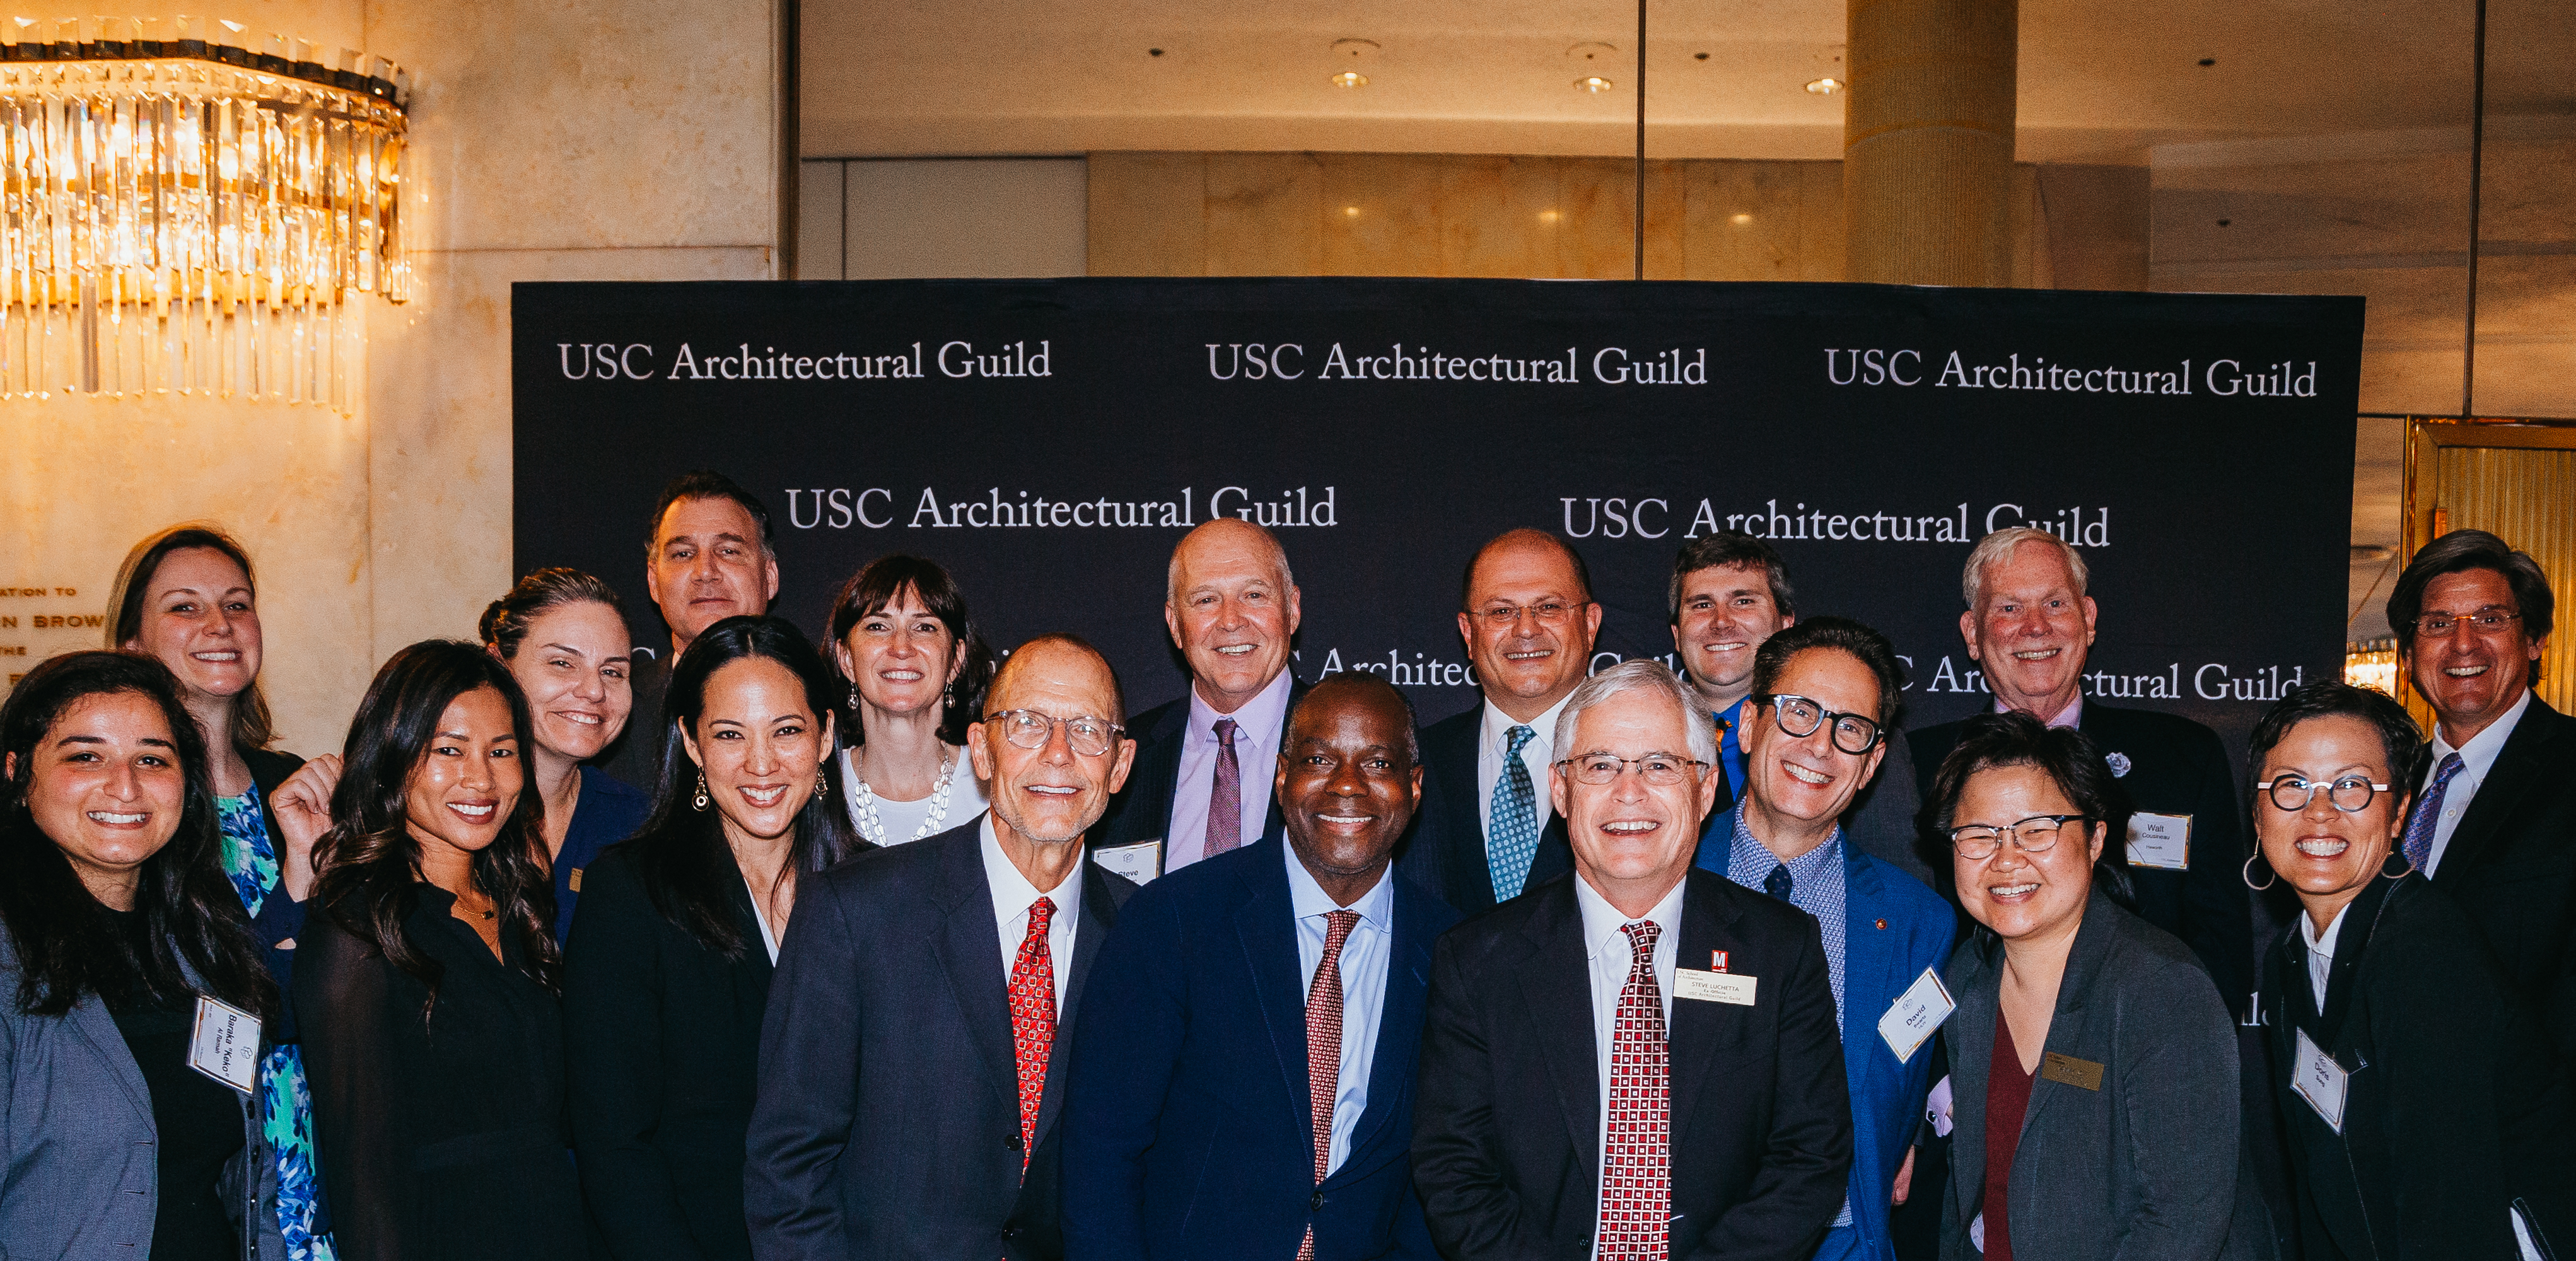 The Architectural Guild Board, 2018-2019